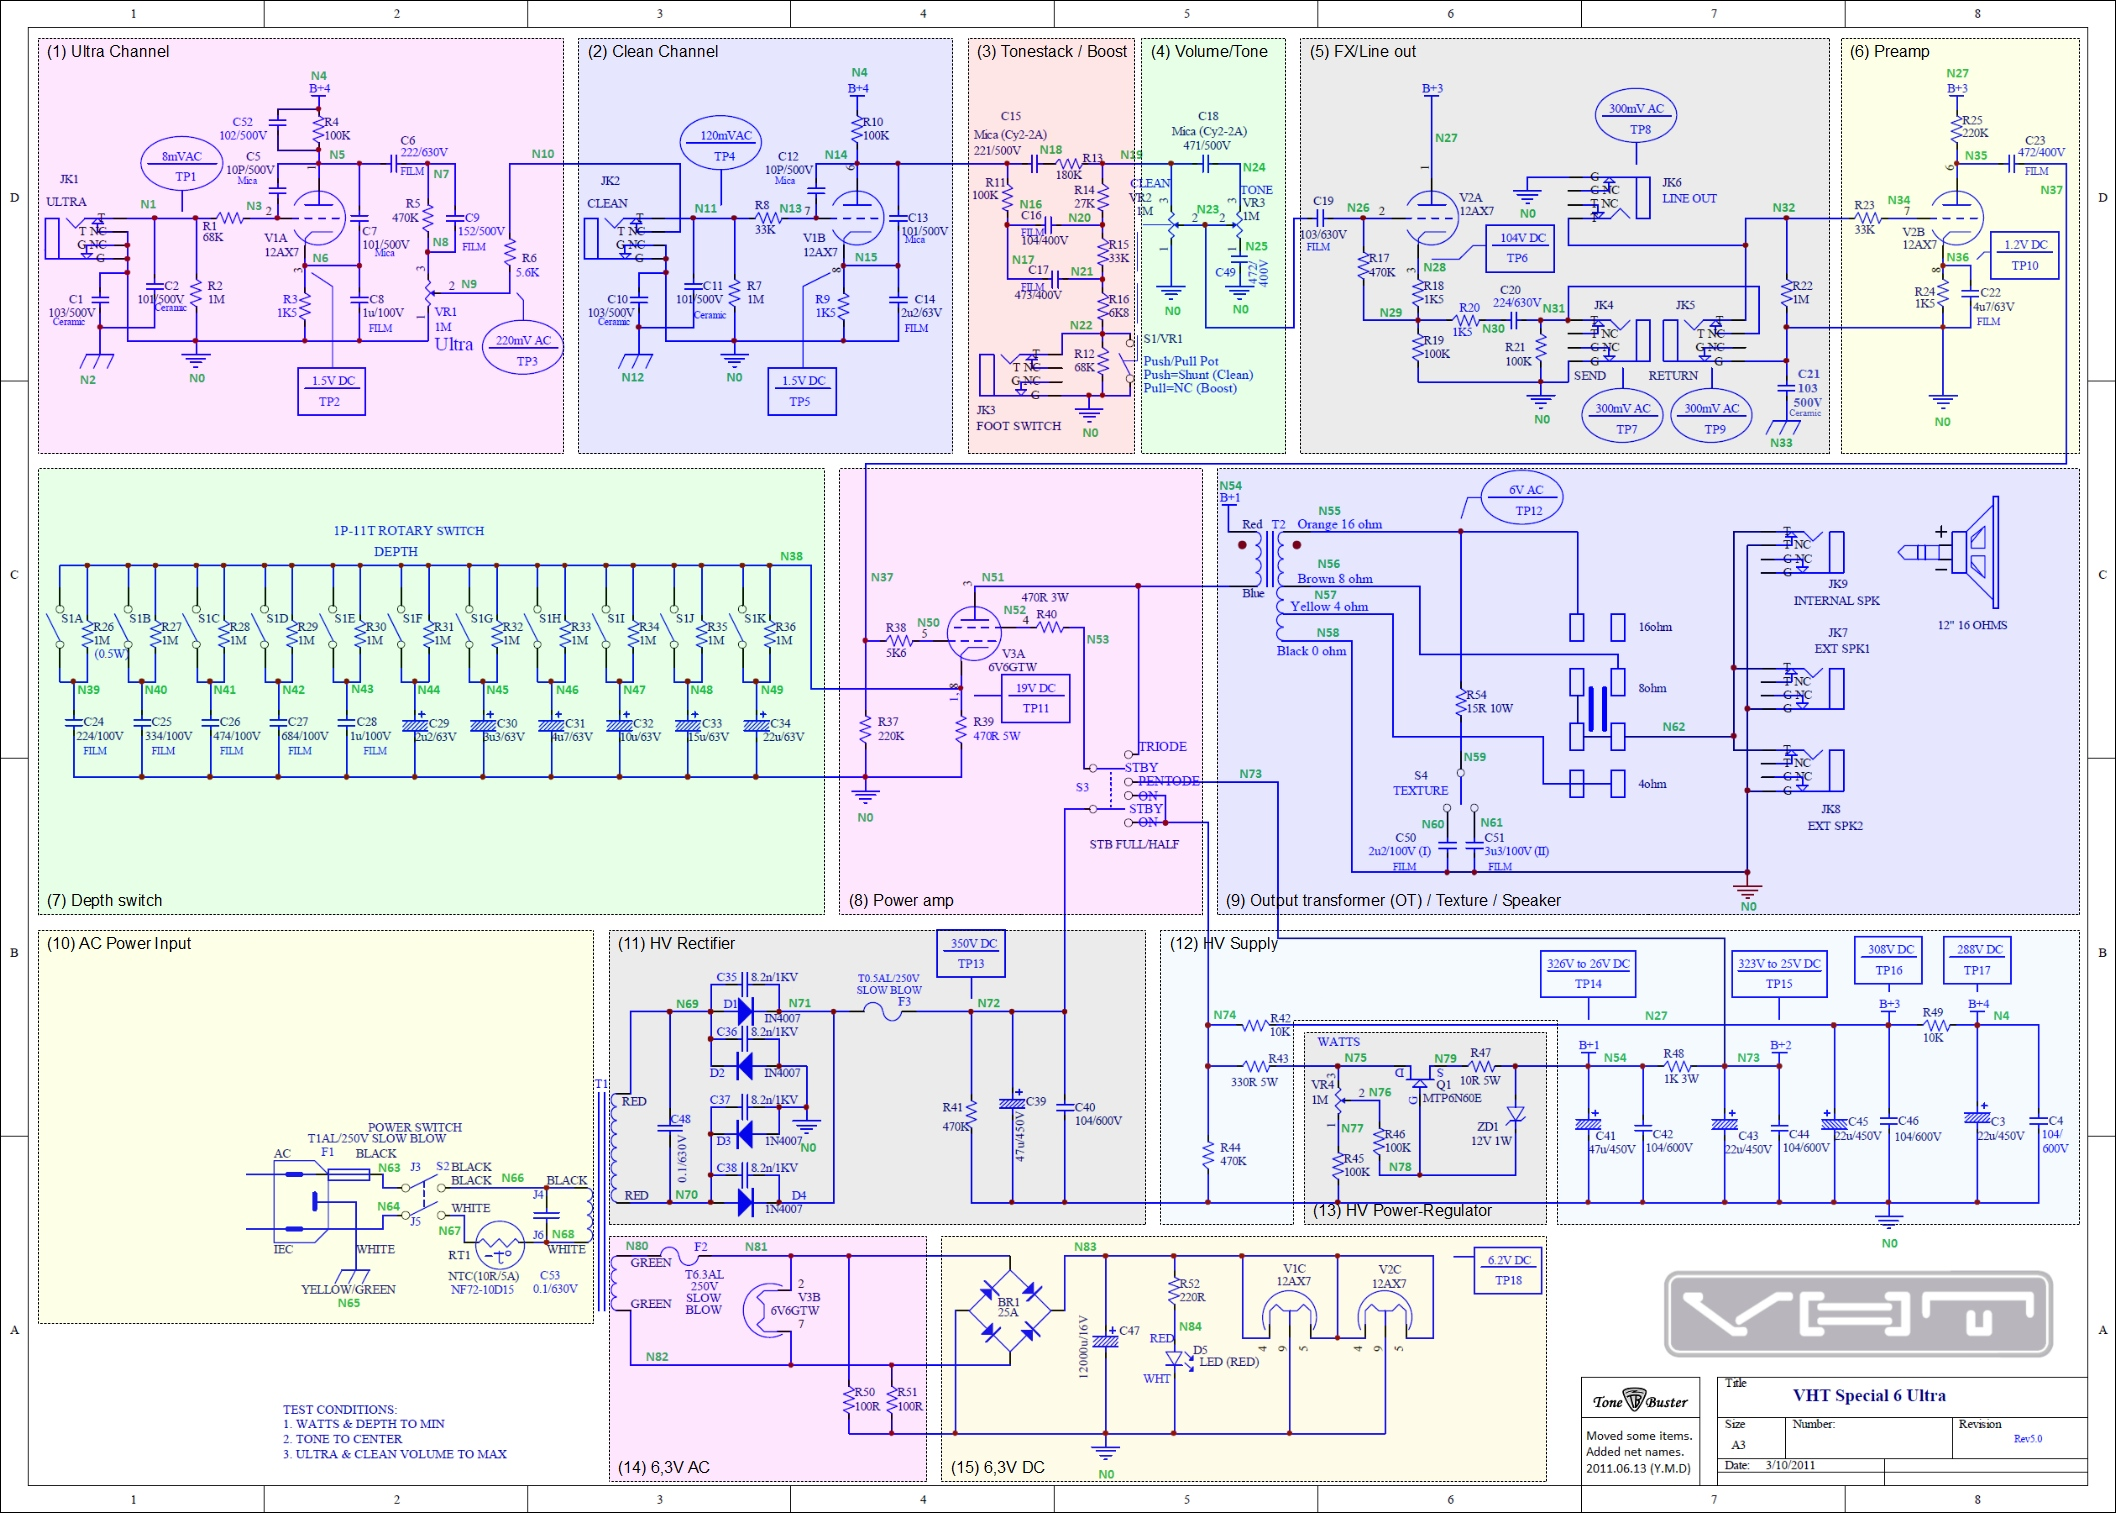 Vht Mods Guitar Tone Control Wiring Diagrams On Schematic Diagram Maker Click For Full Size Image